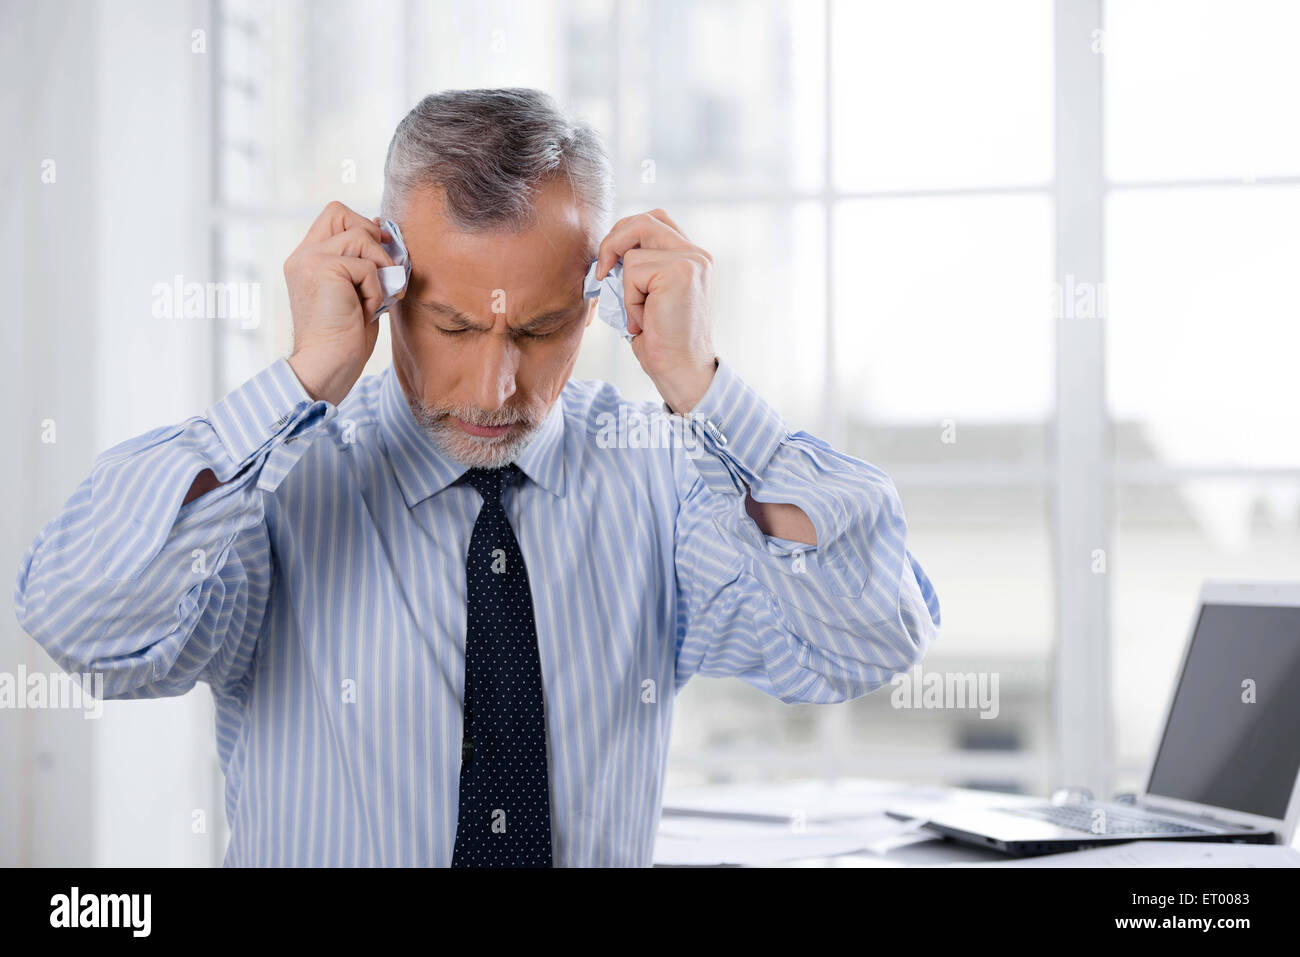 Concept for businessman in office - Stock Image